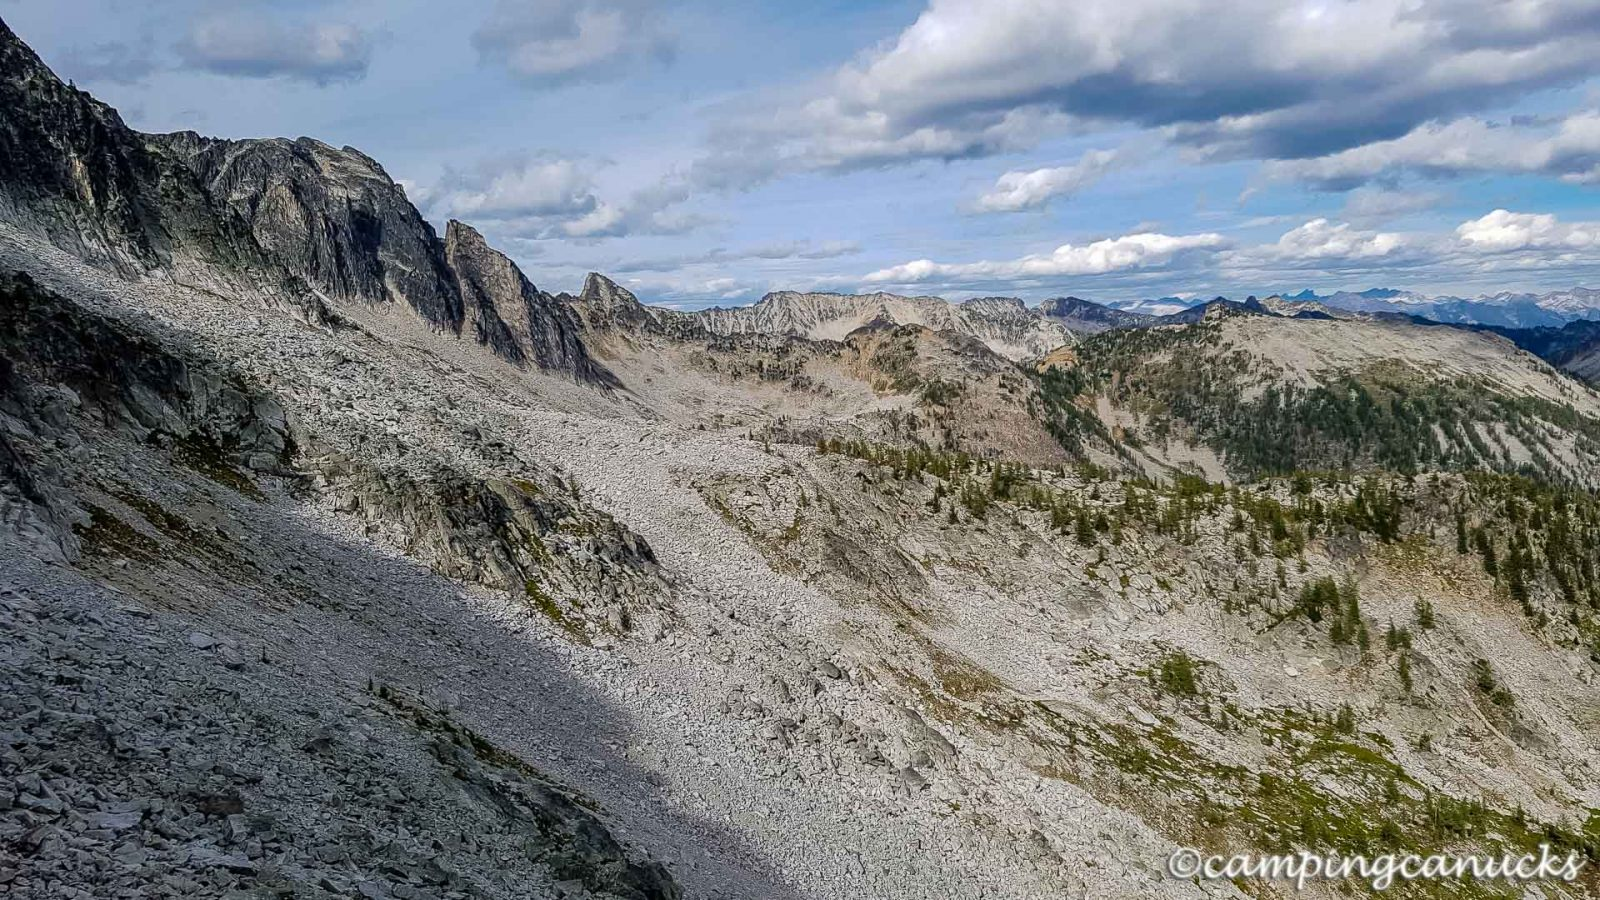 The route ahead to the next ridge